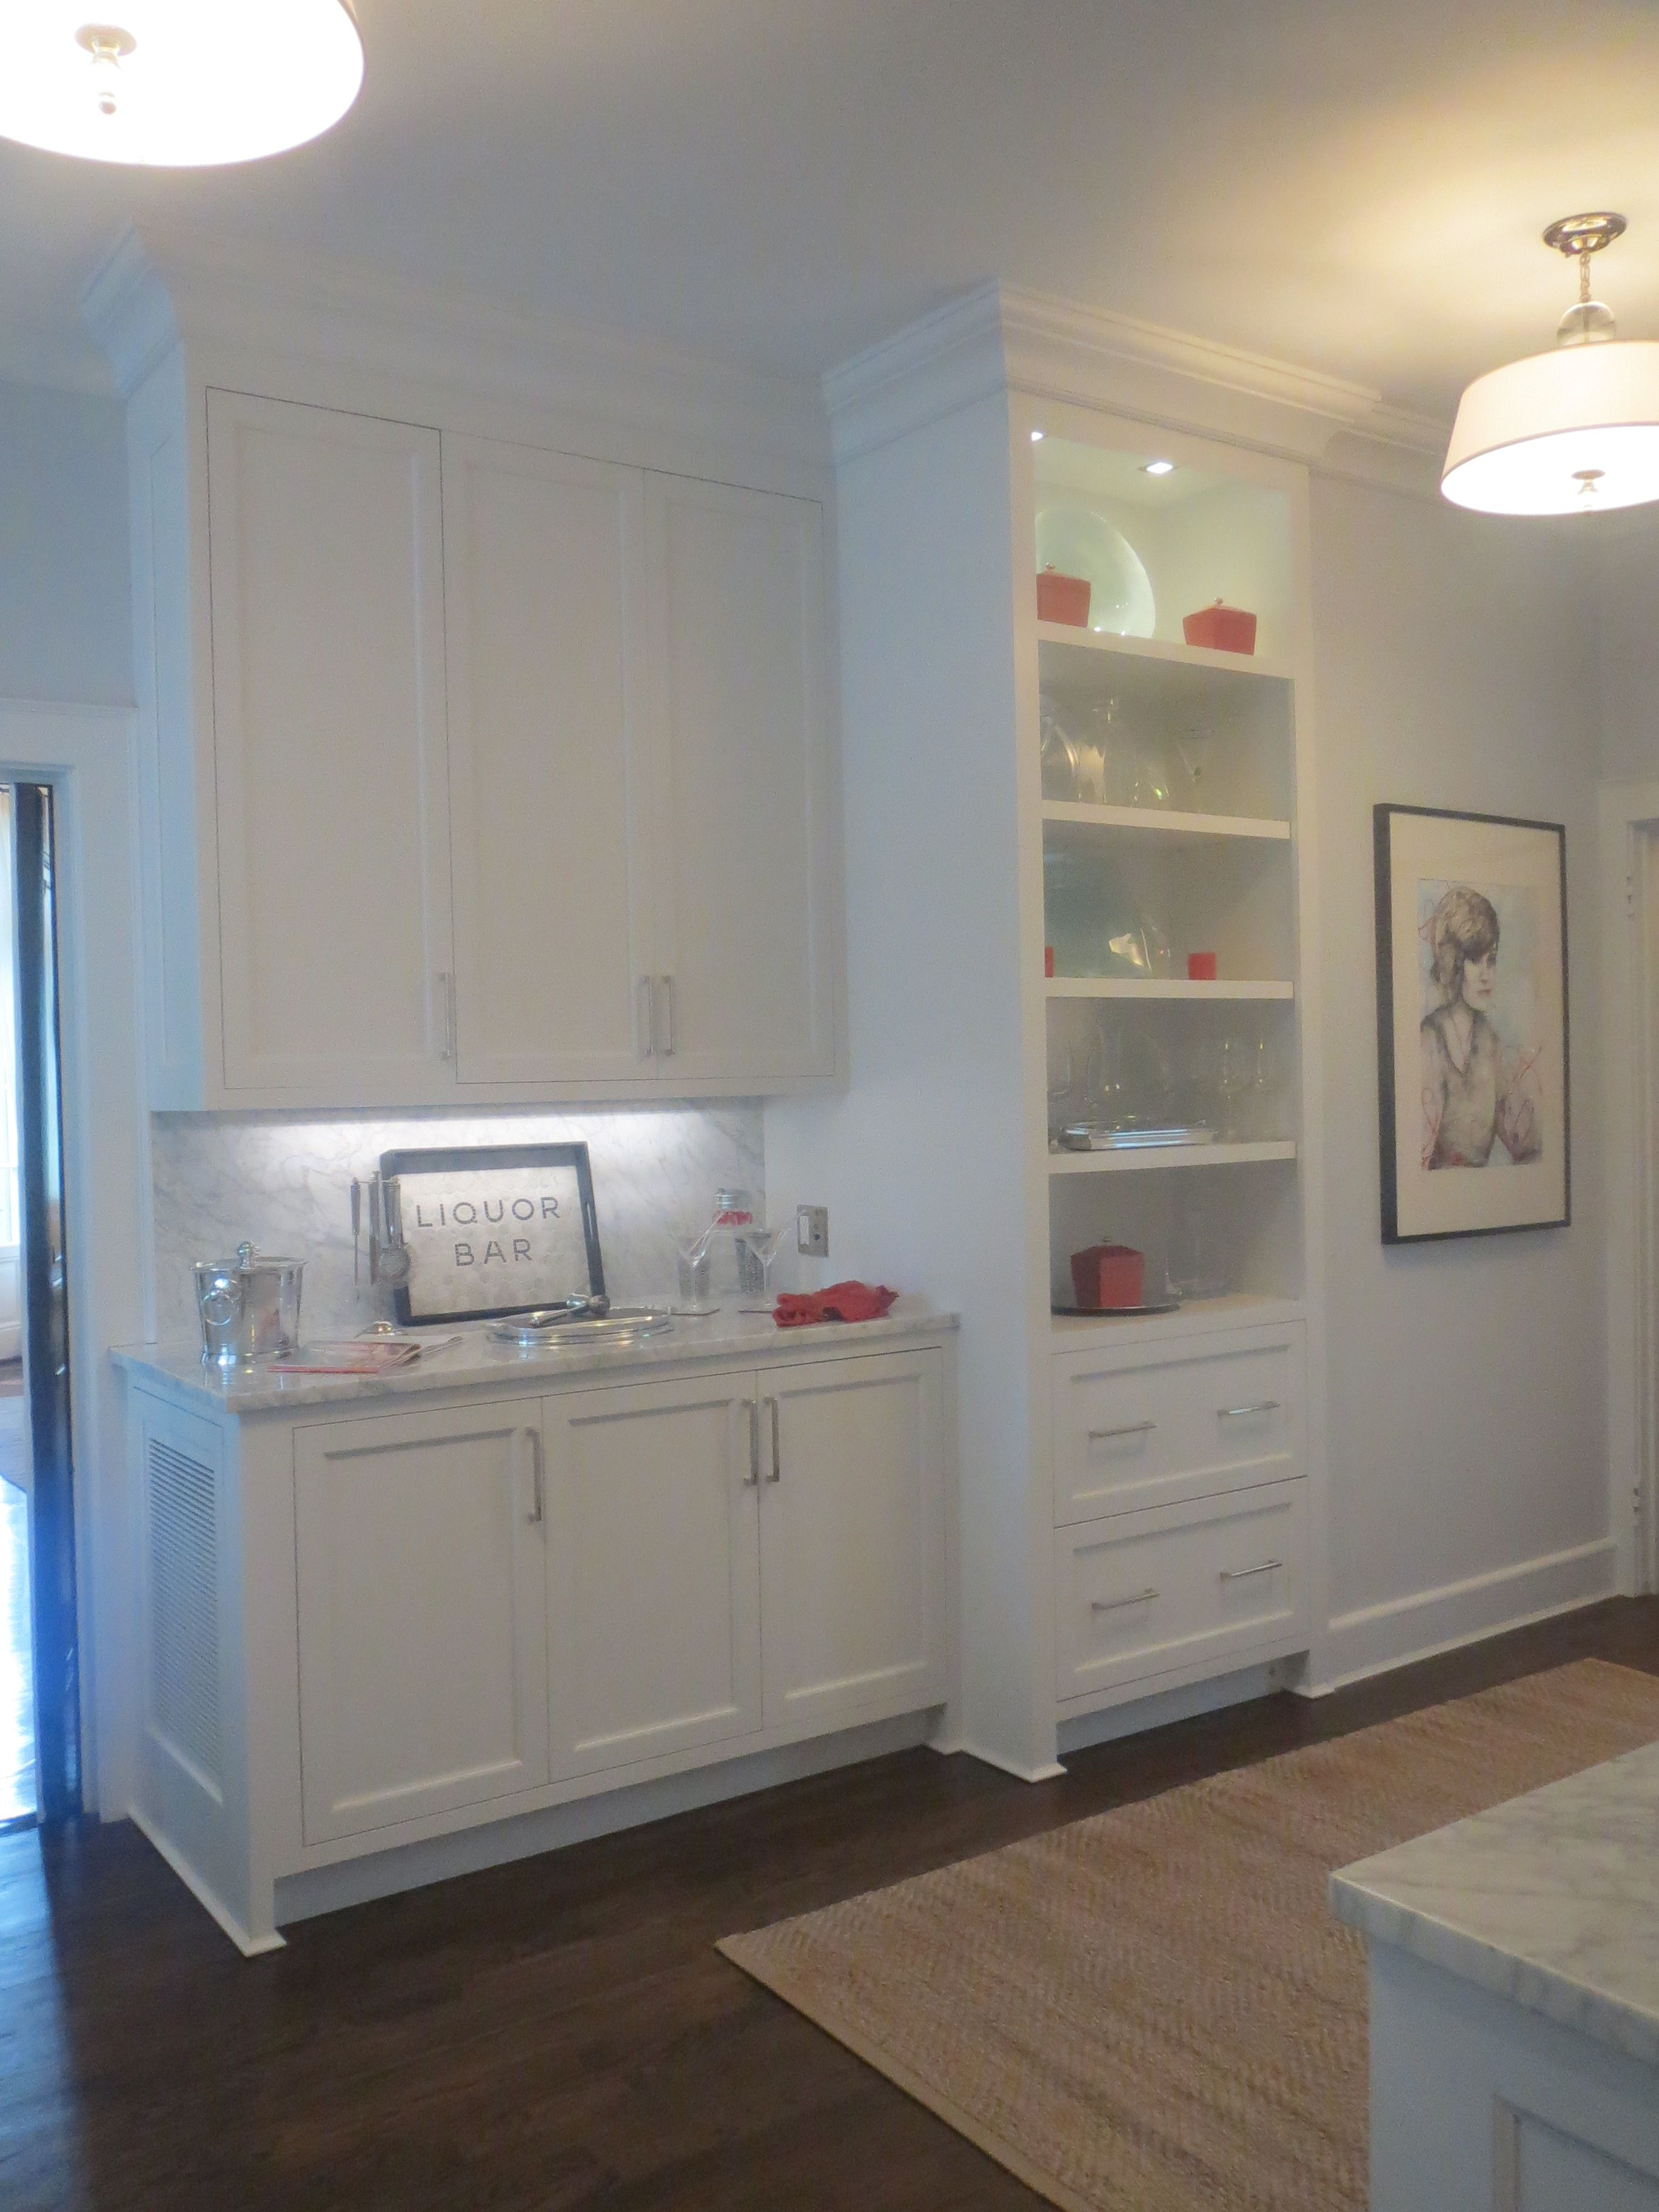 Butlers Pantry By Mary Gray Lightstorm Inc Kitchen And Bath Design Mac 631 673 7635